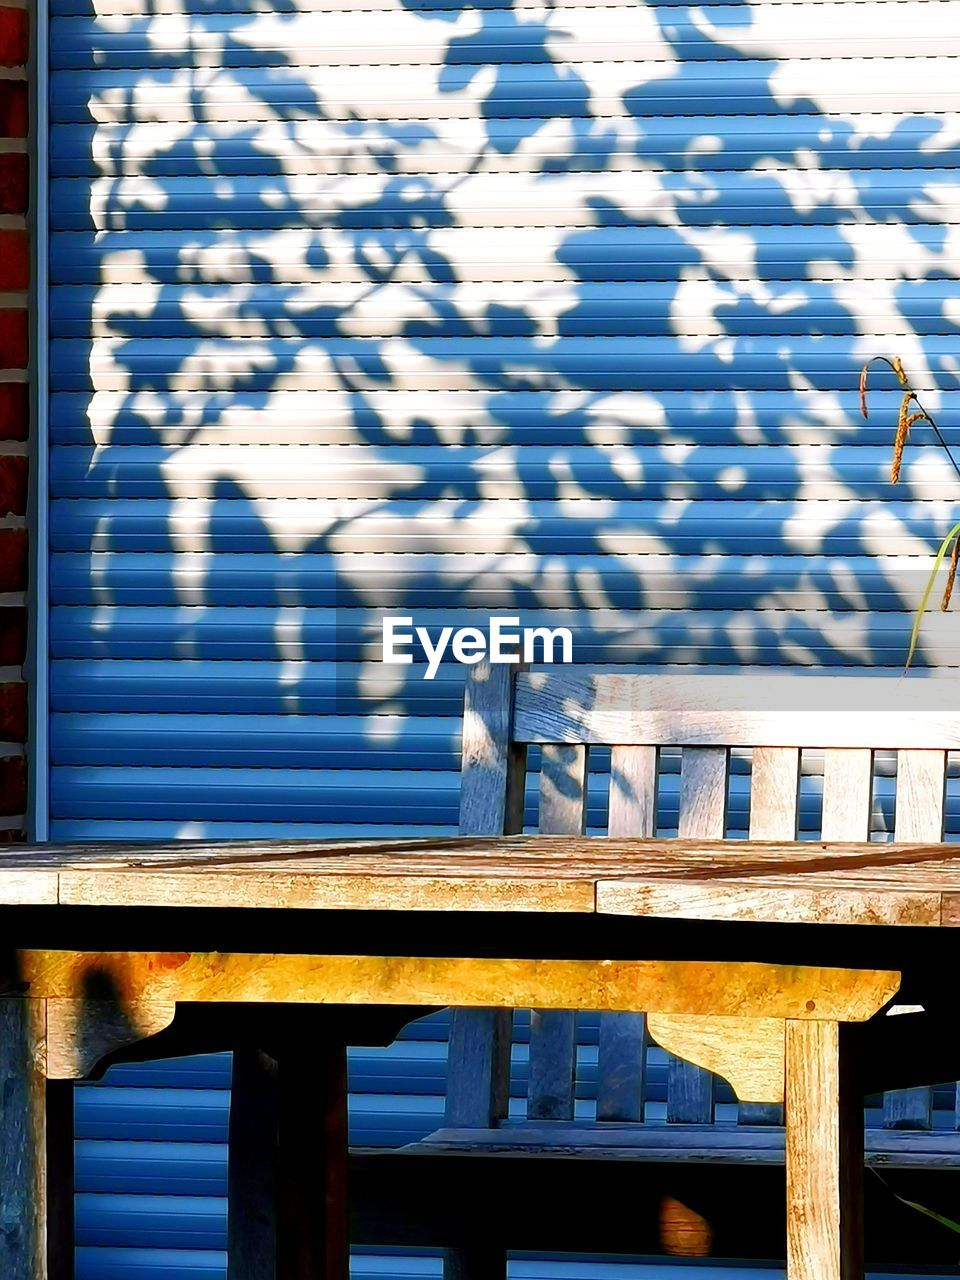 sunlight, shadow, railing, day, nature, wood - material, outdoors, no people, blue, built structure, table, architecture, pattern, water, seat, high angle view, metal, security, safety